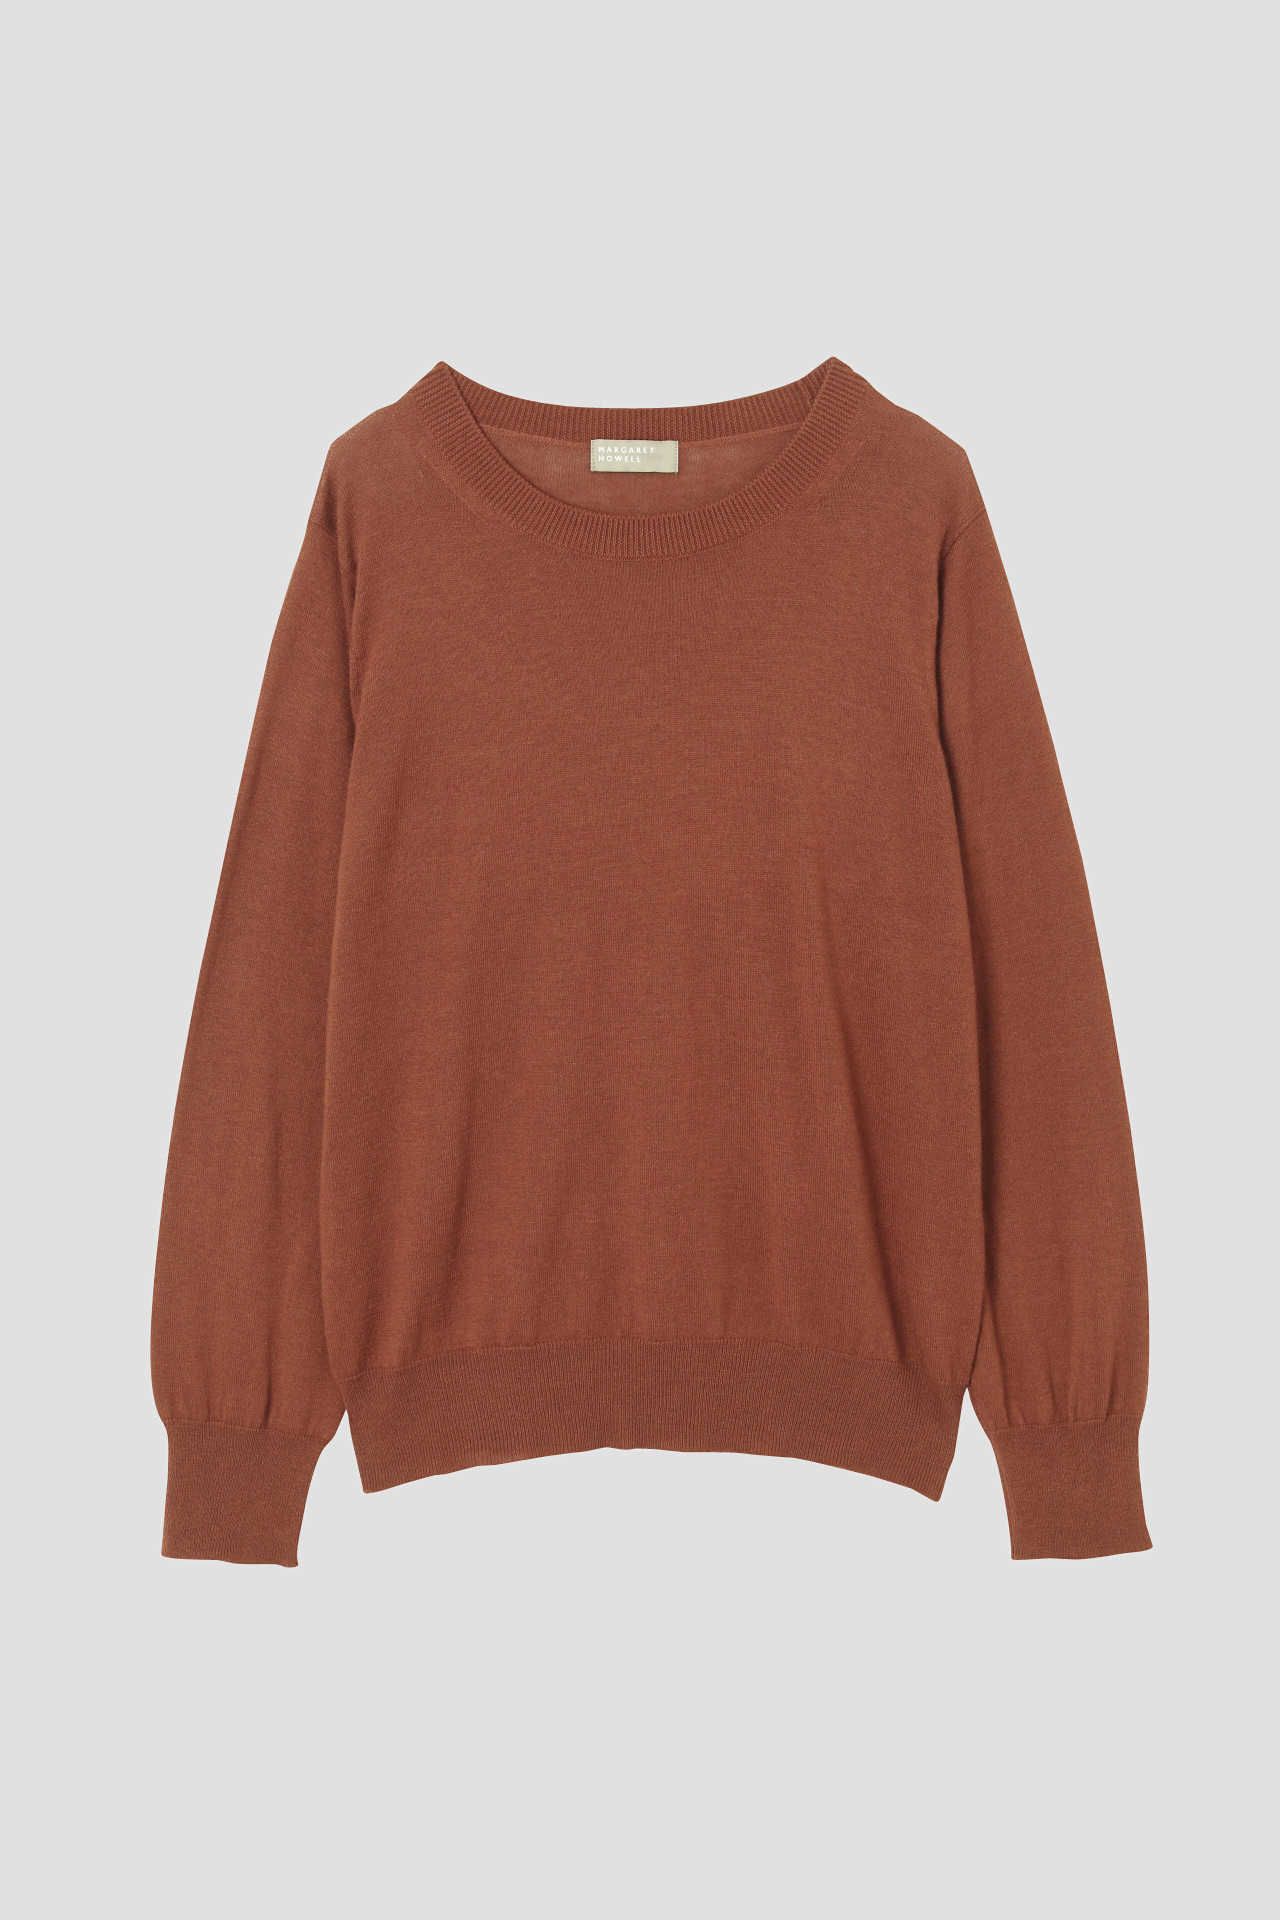 WOOL COTTON JUMPER10